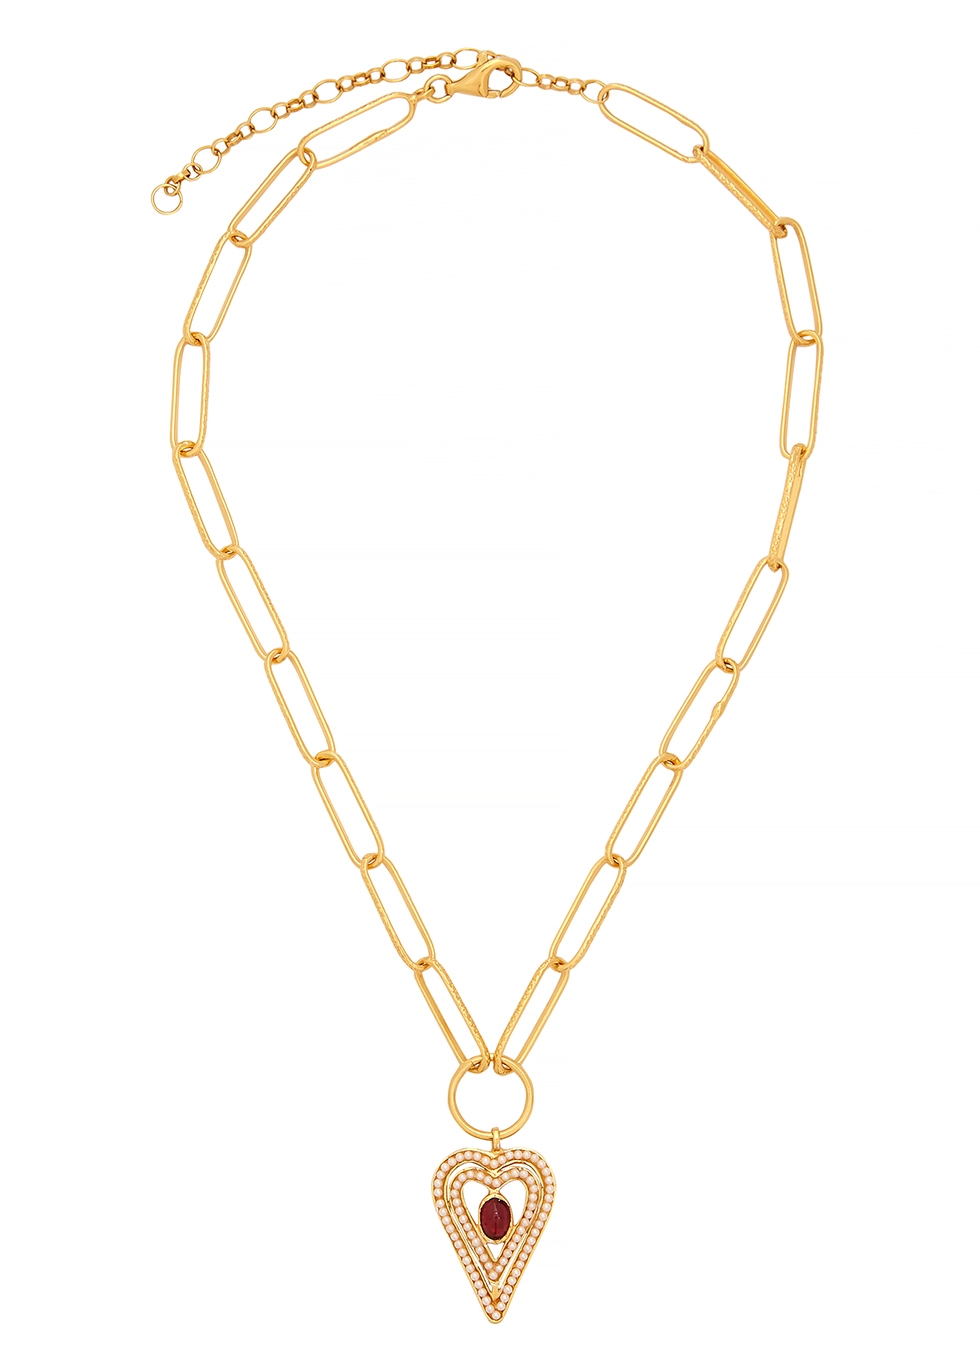 Amore 18kt gold-plated necklace